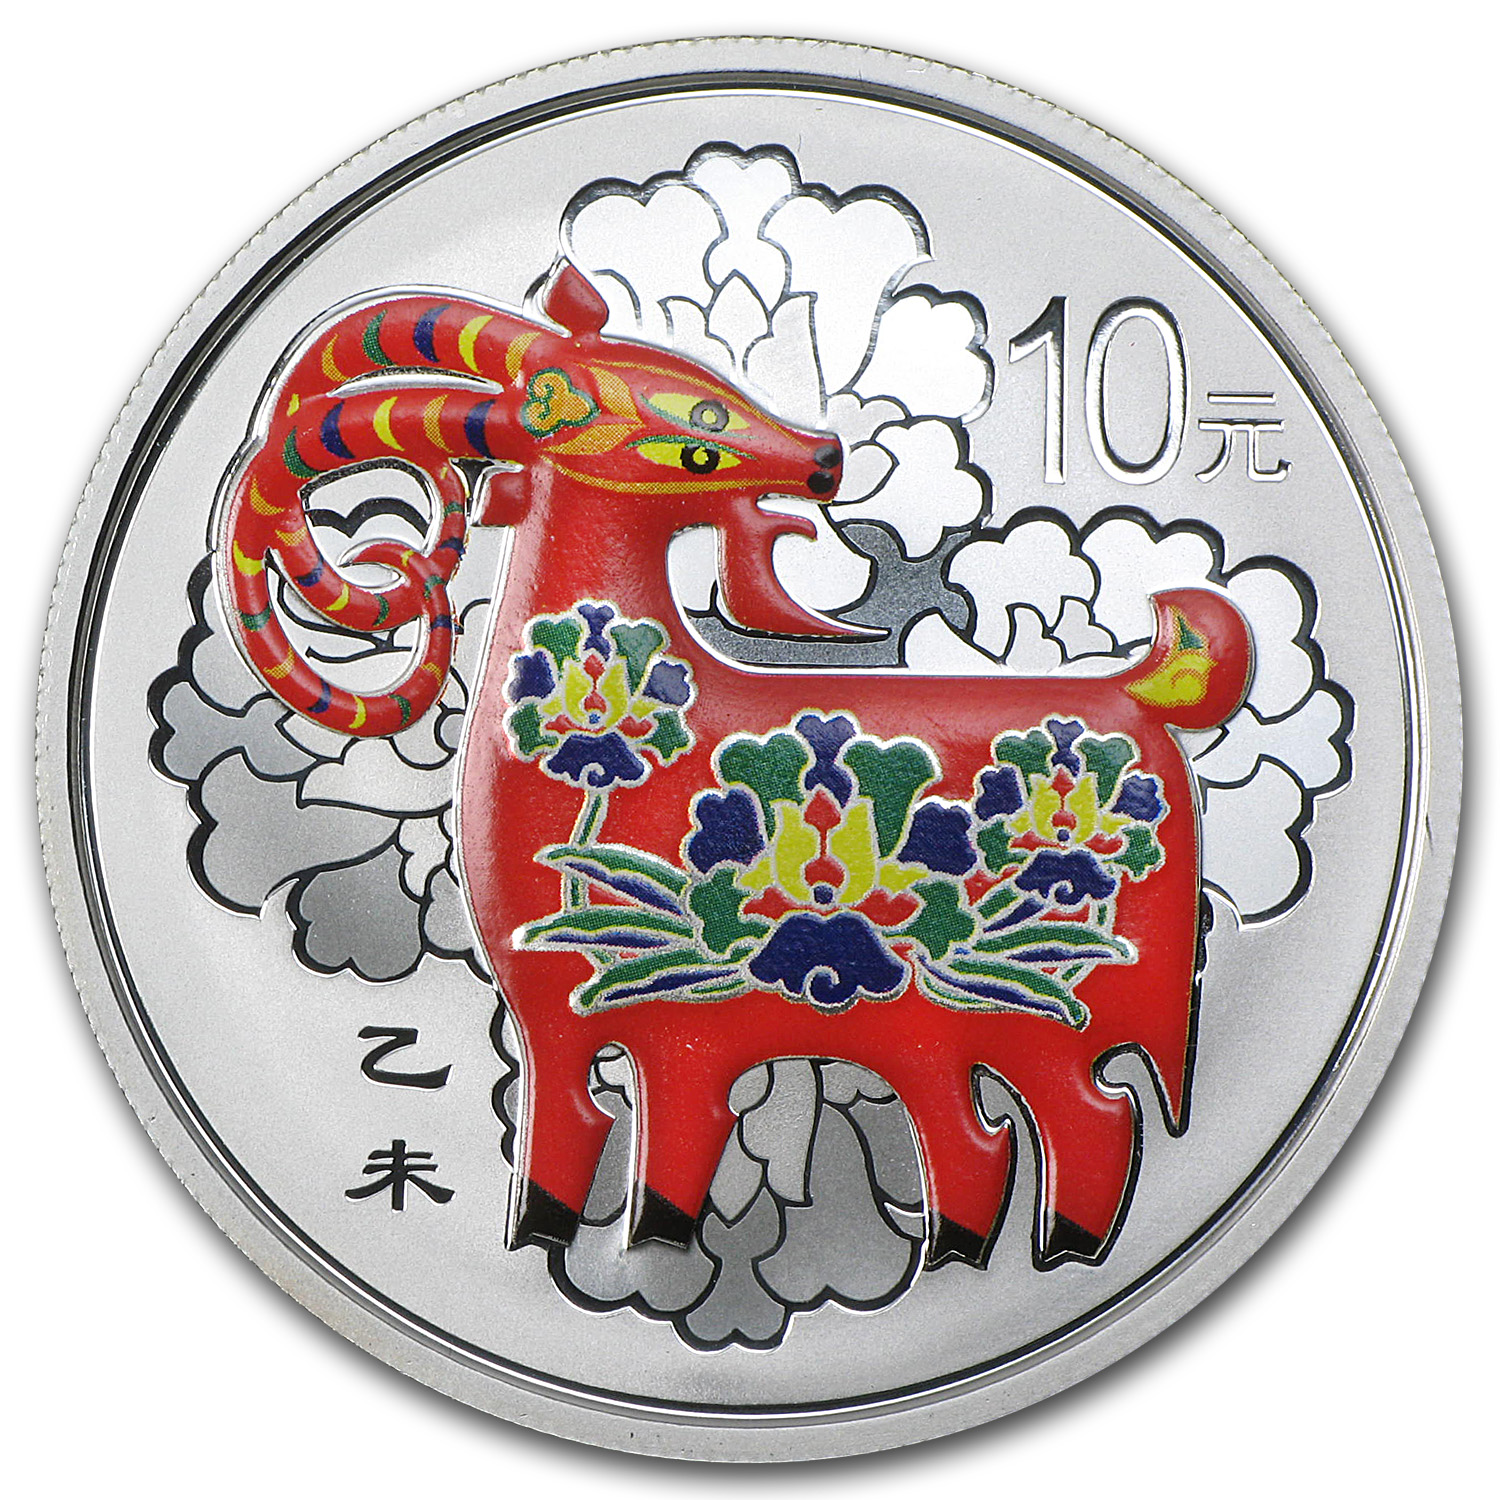 2015 China 1 oz Silver Goat Prf (Colorized, Box & COA)